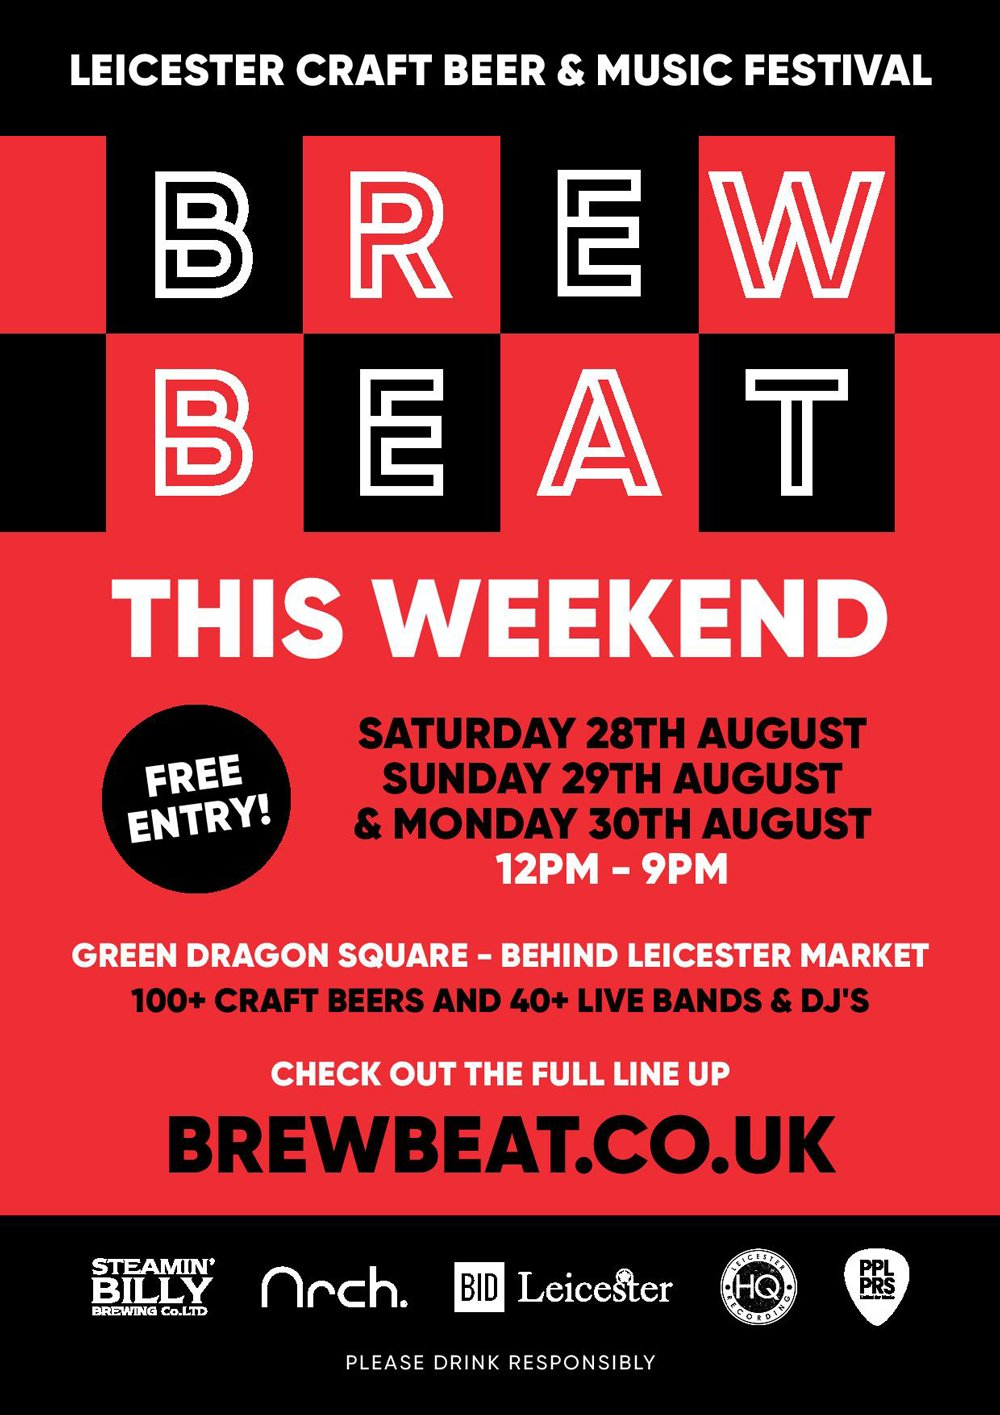 72 hours to go until three-day festival of craft beer, food and music is served in Leicester city